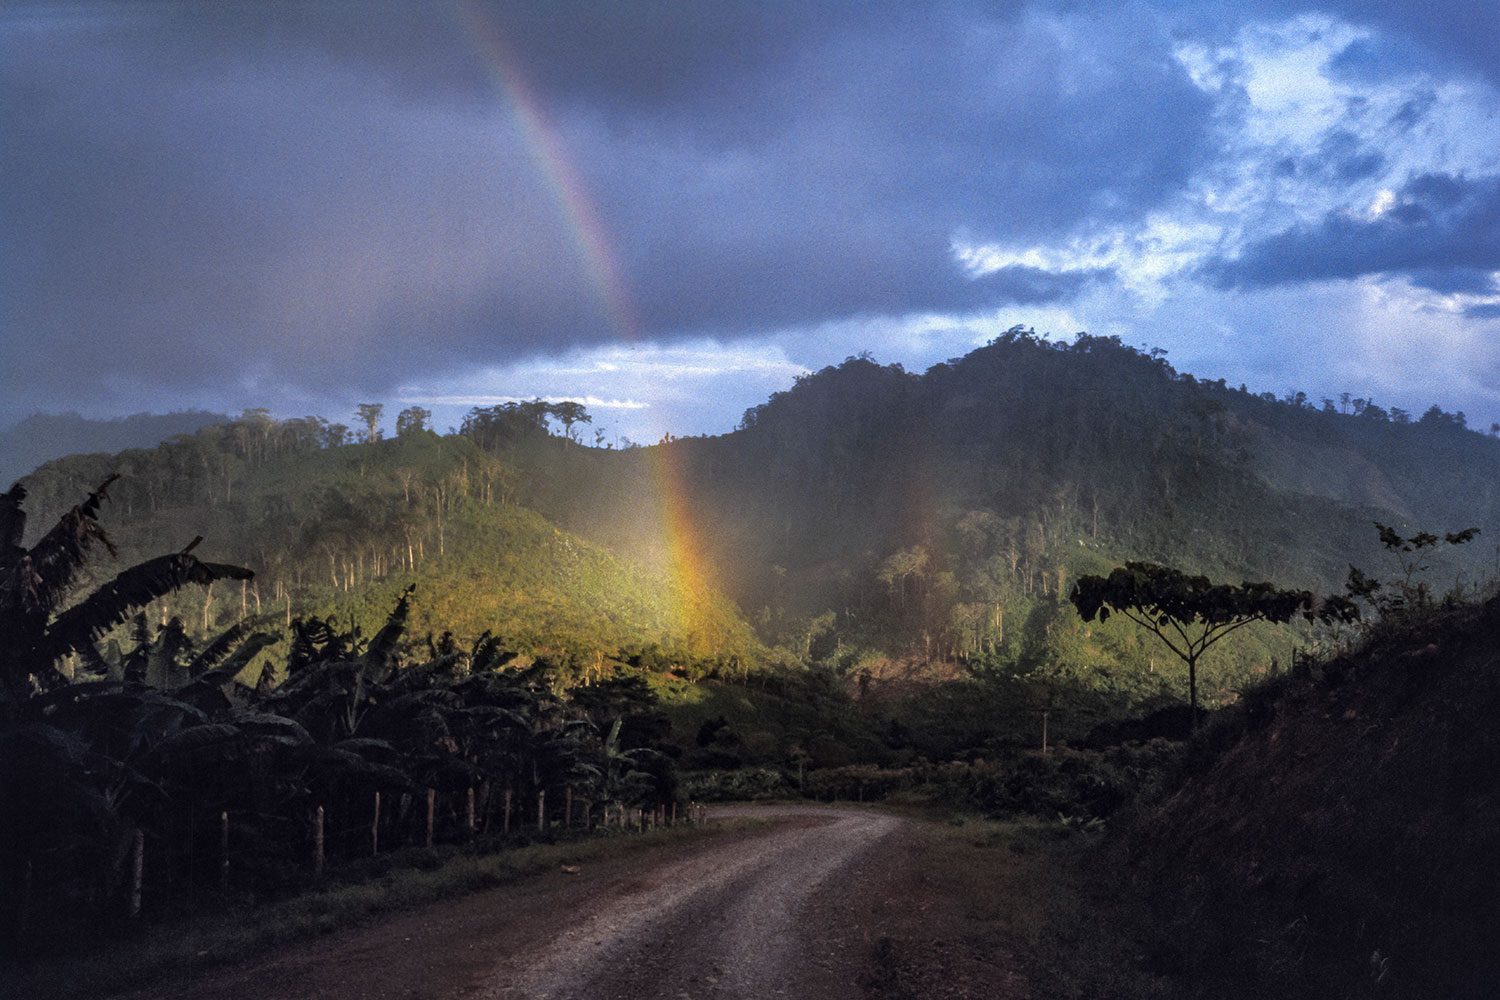 A double rainbow on the road to Nicaragua's remote Atlantic Coast, 1986.